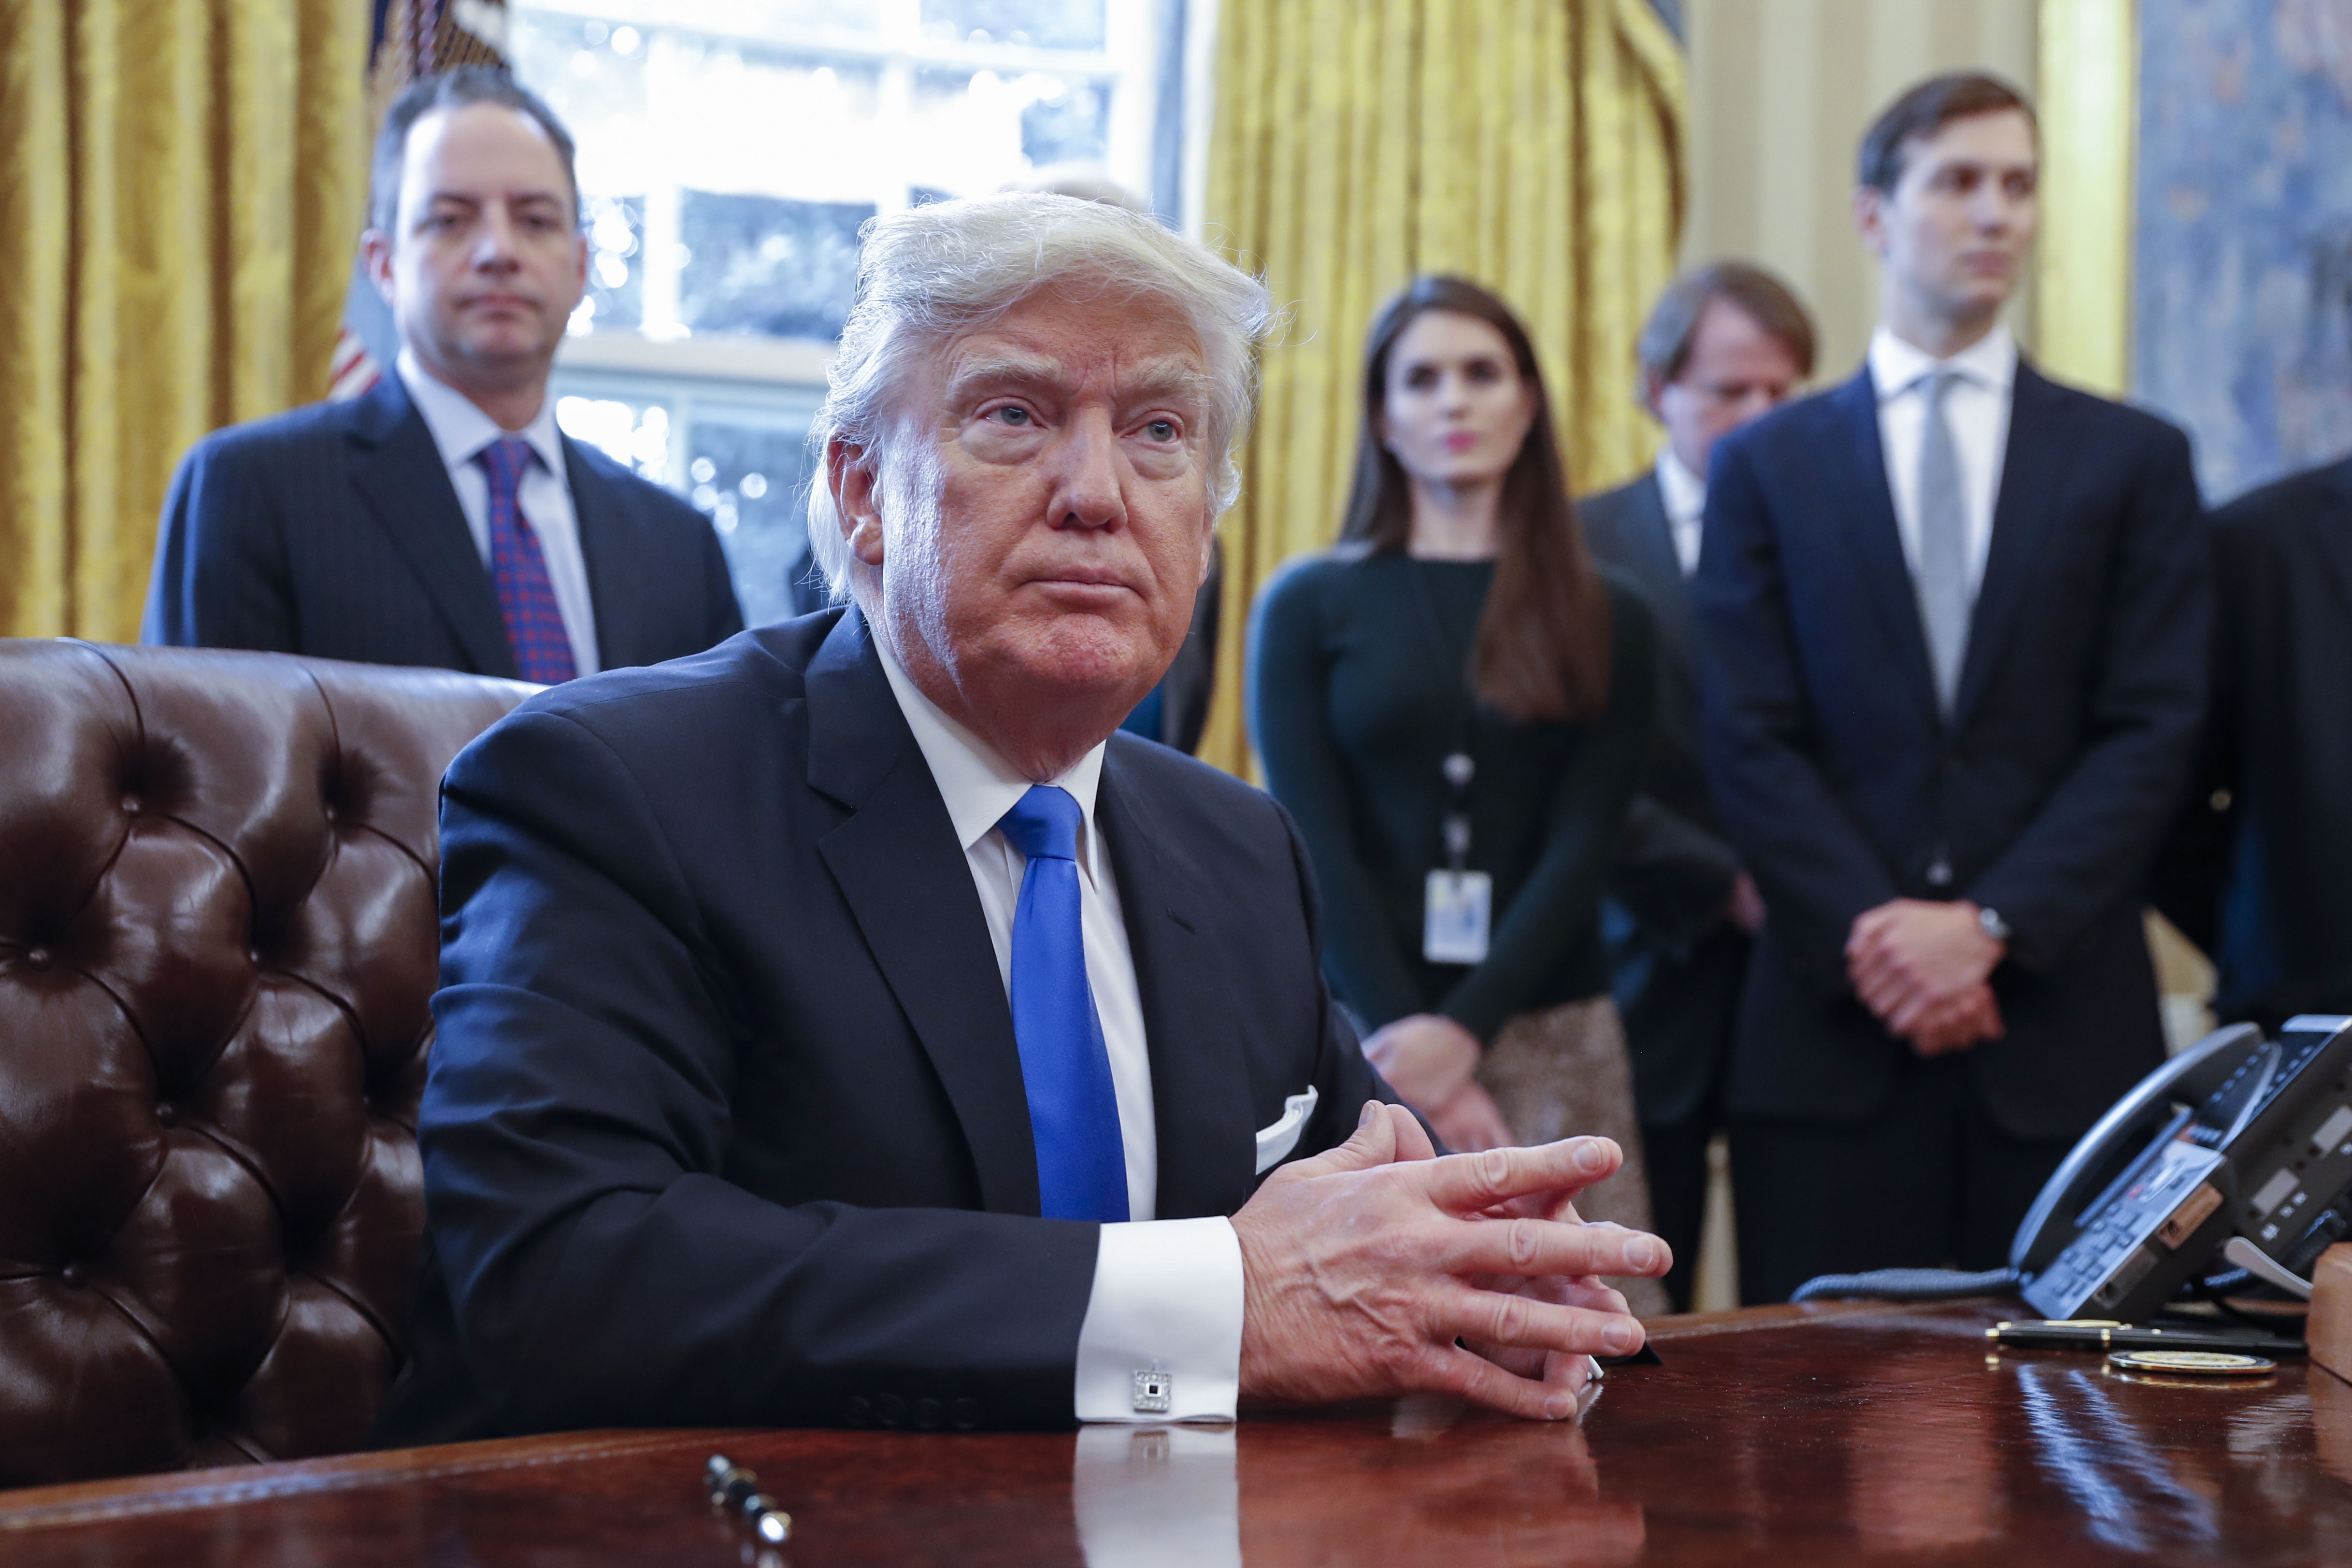 President Trump will give a broad policy speech to a joint session of Congress. (Getty Images)